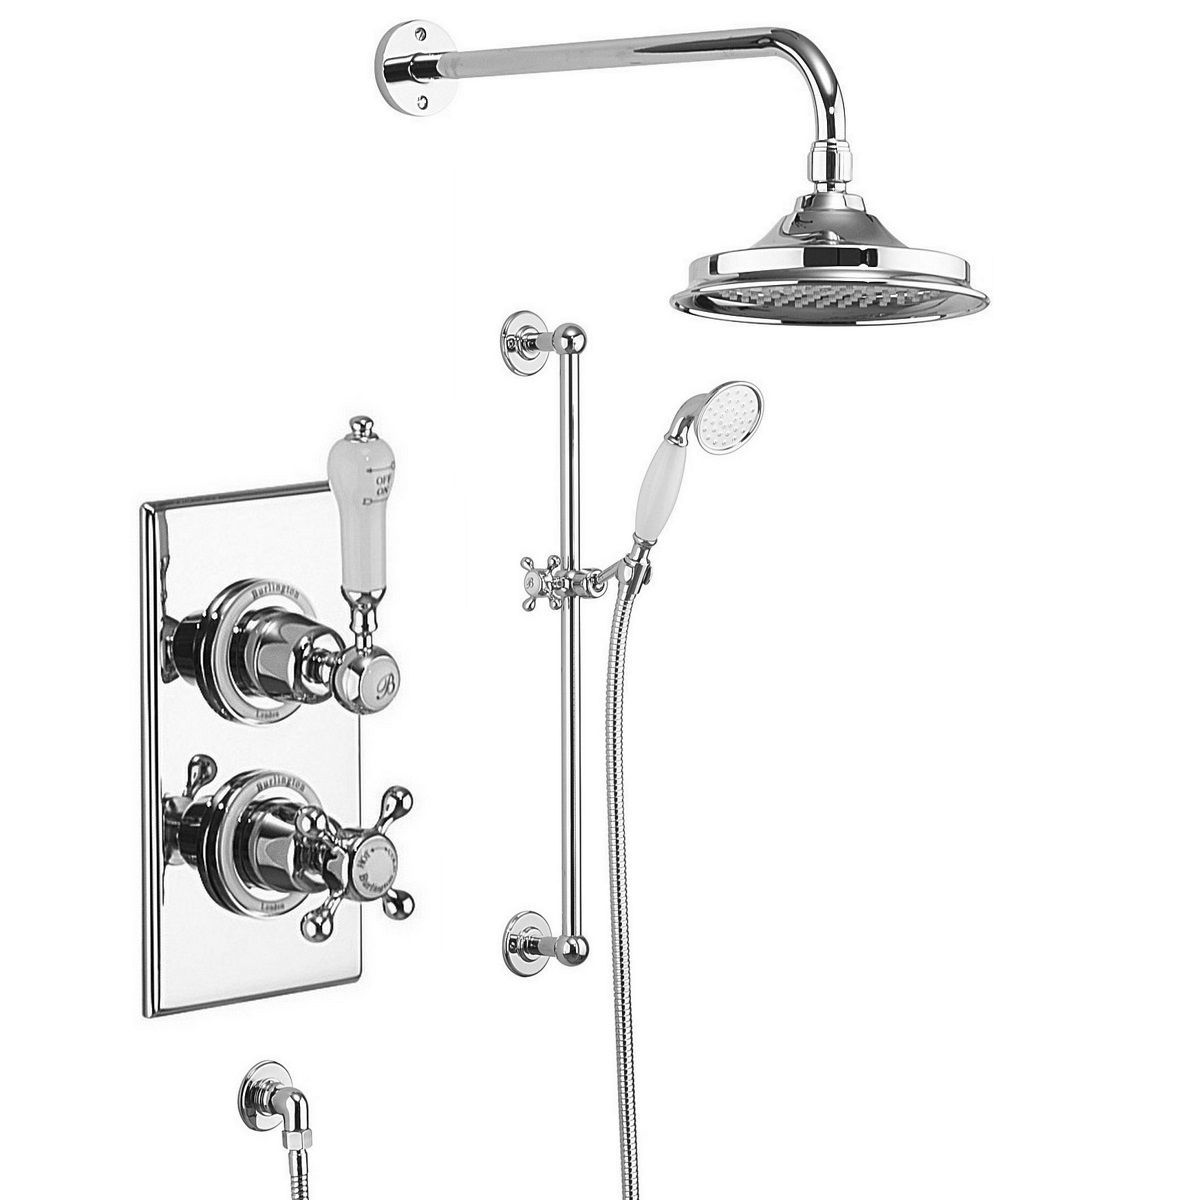 Burlington Trent Concealed Valve With Showerhead And Rail With